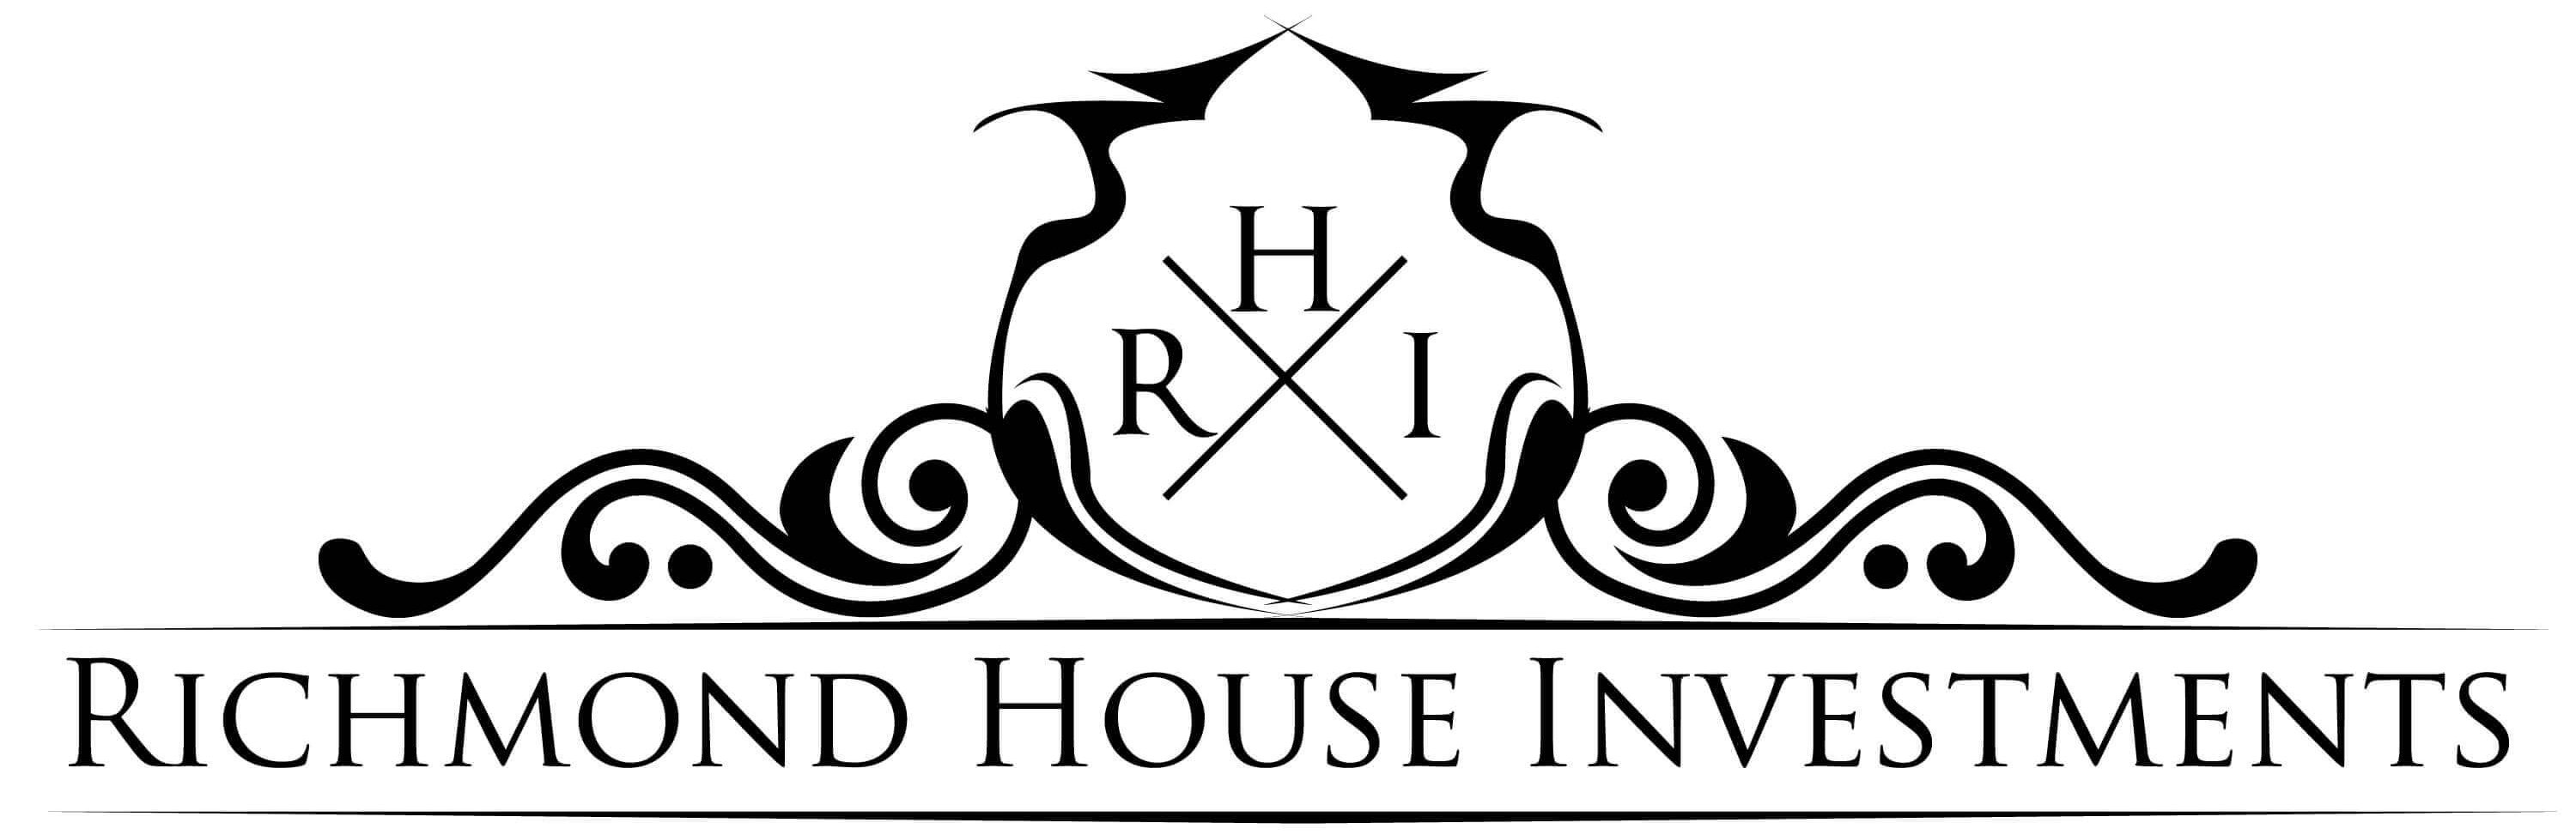 richmondhouseinvestments.com